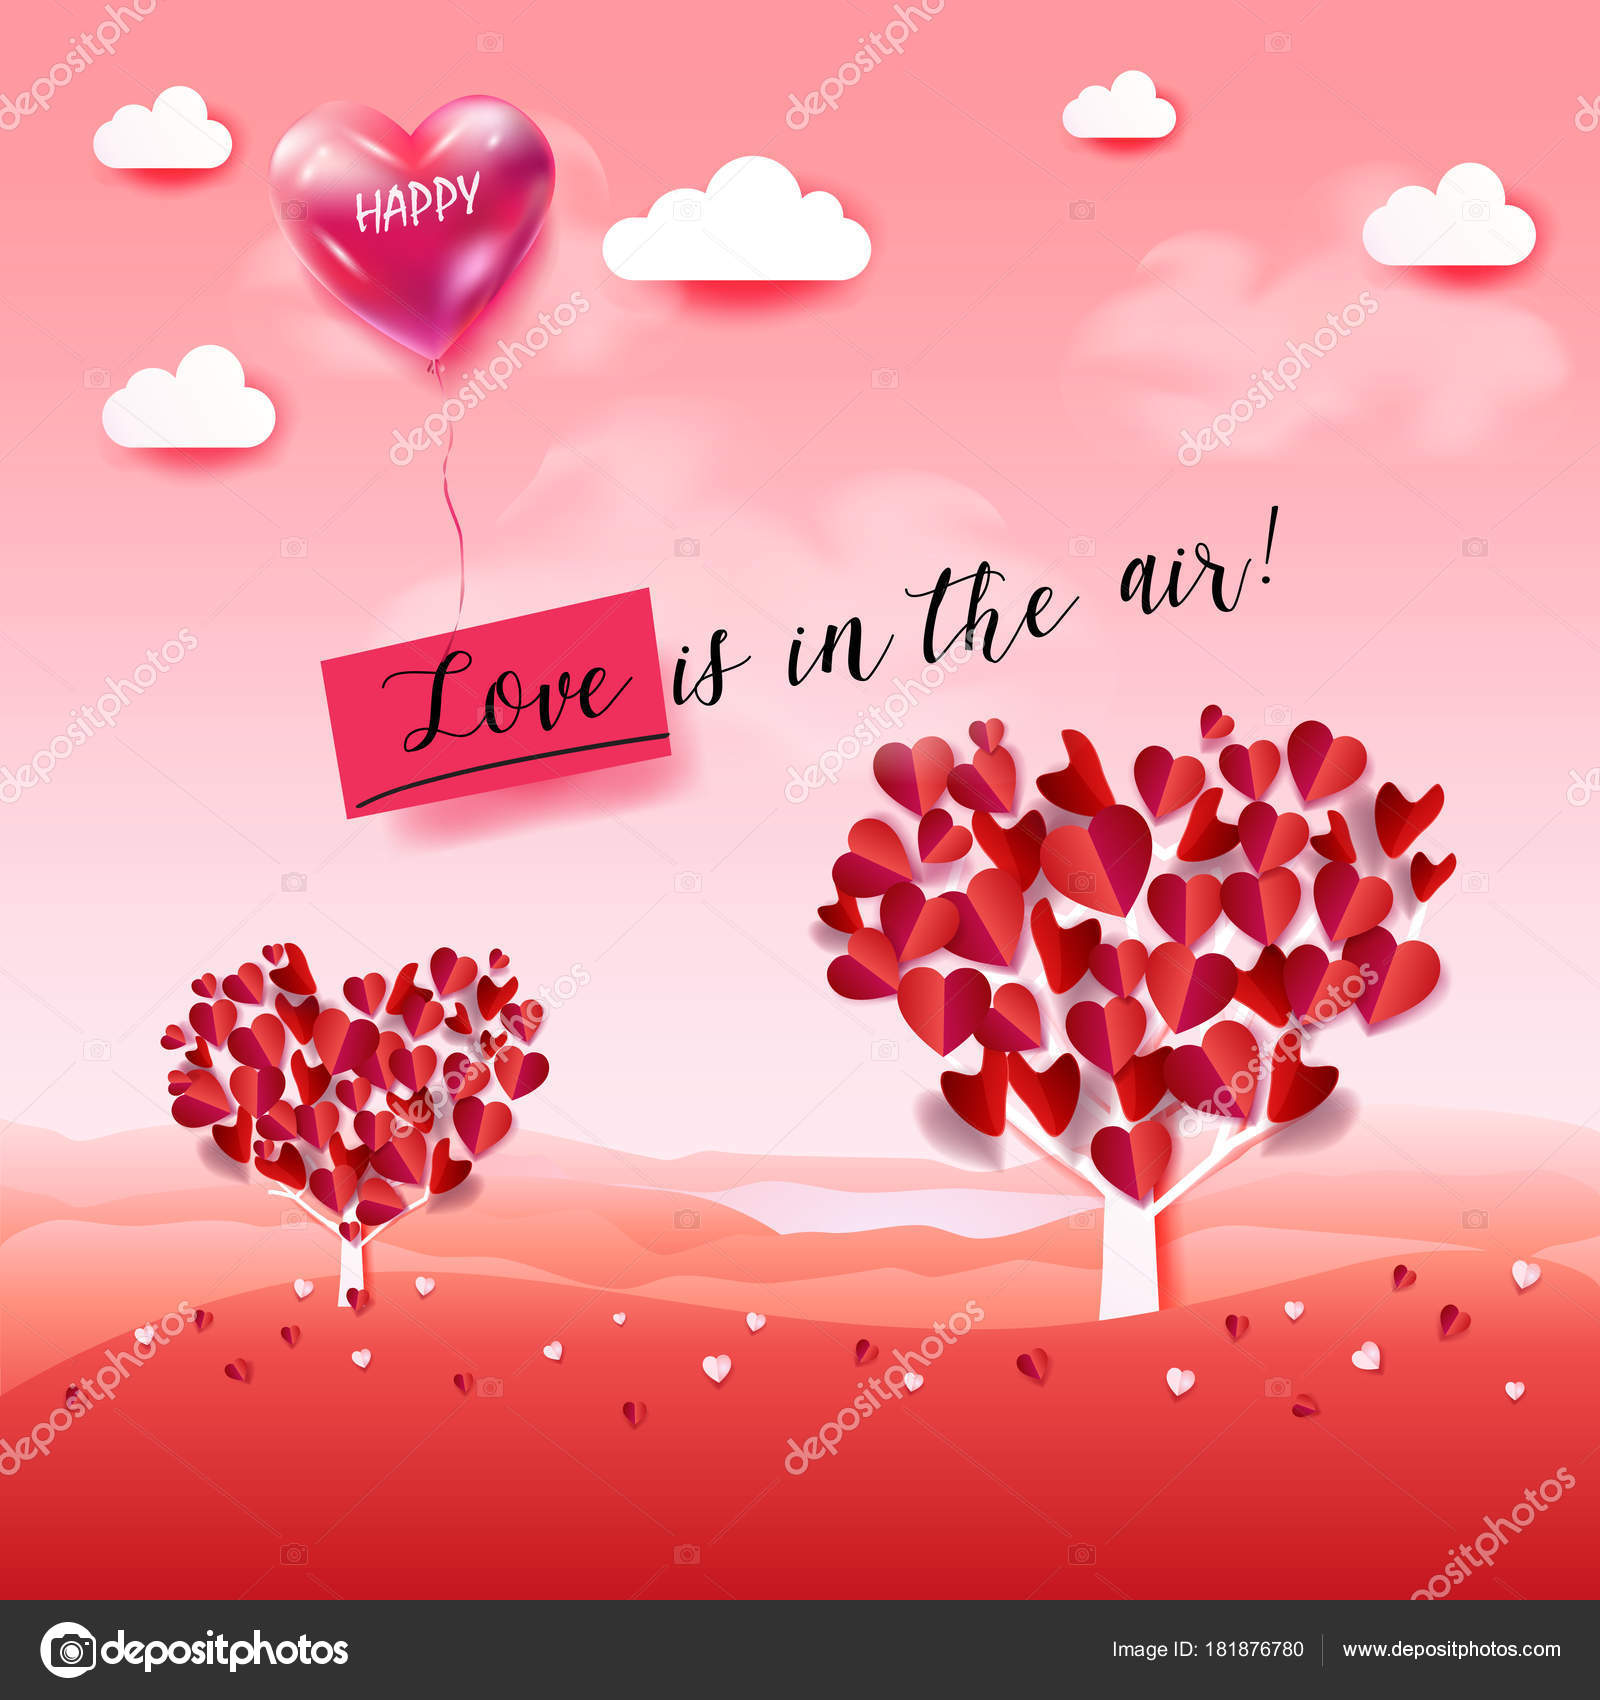 Love air happy valentines day greeting poster valentines day mother happy valentines day greeting poster valentines day mothers day womens day holiday birthday anniversary wedding day romantic love symbols red m4hsunfo